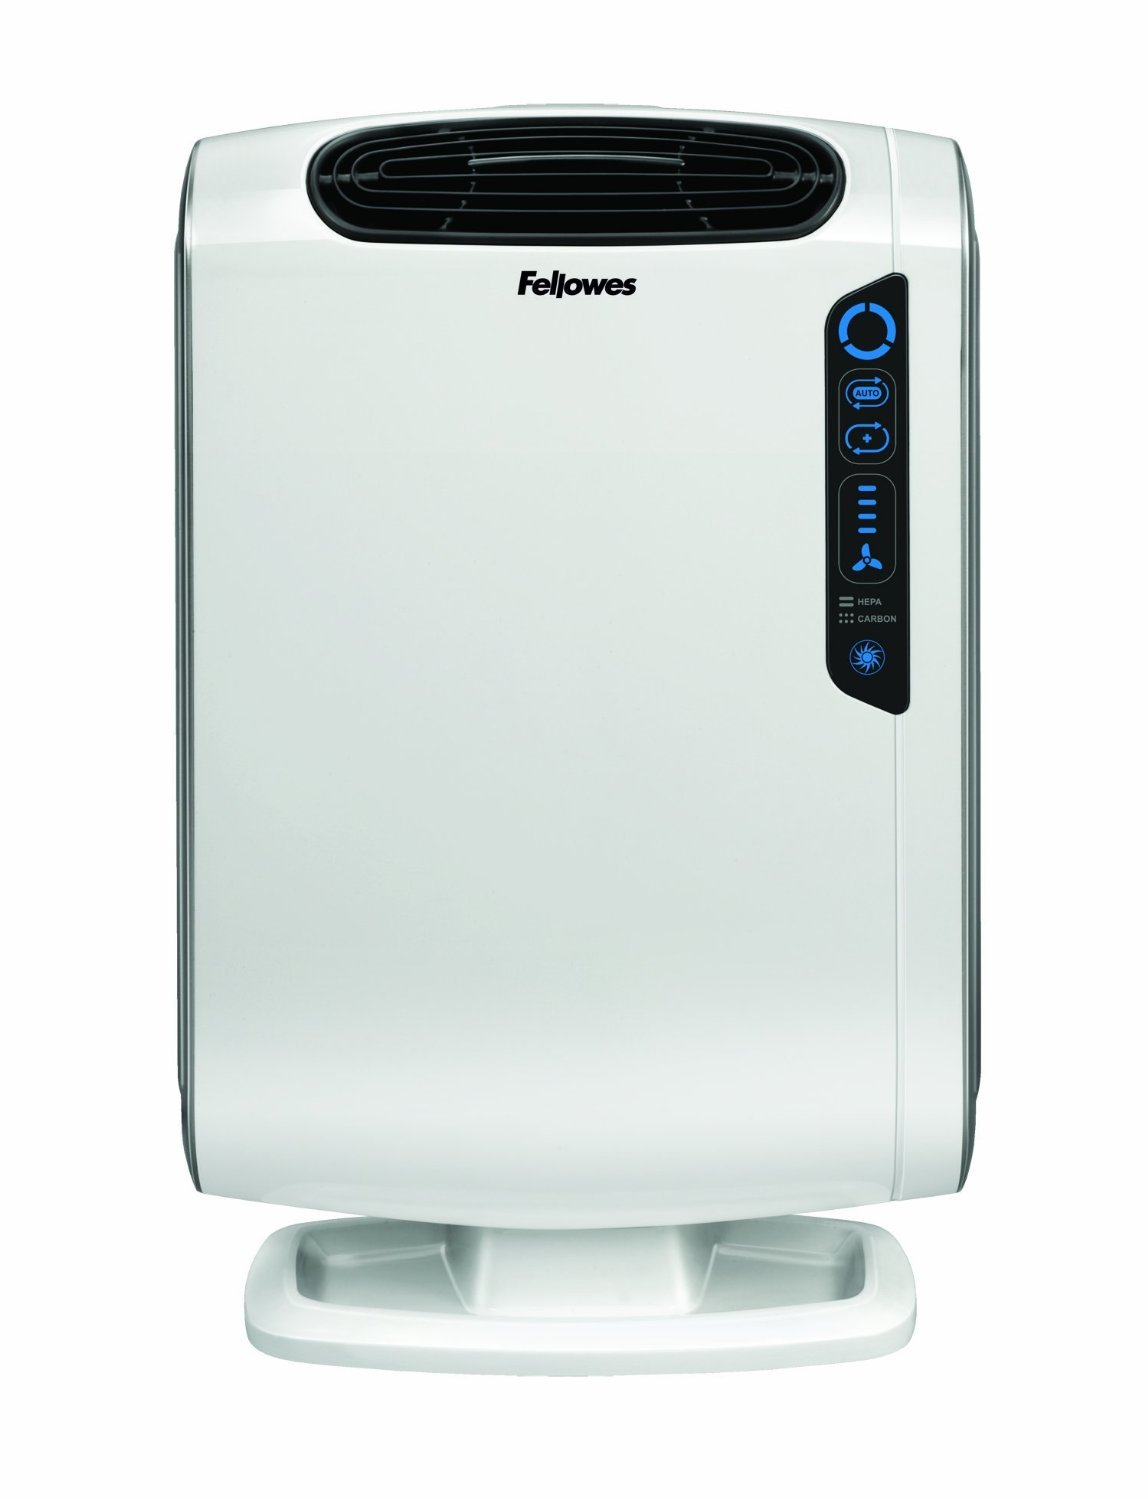 Fellowes Allergy UK Approved AeraMax DX55 Air Purifier with True HEPA Filter 9393001